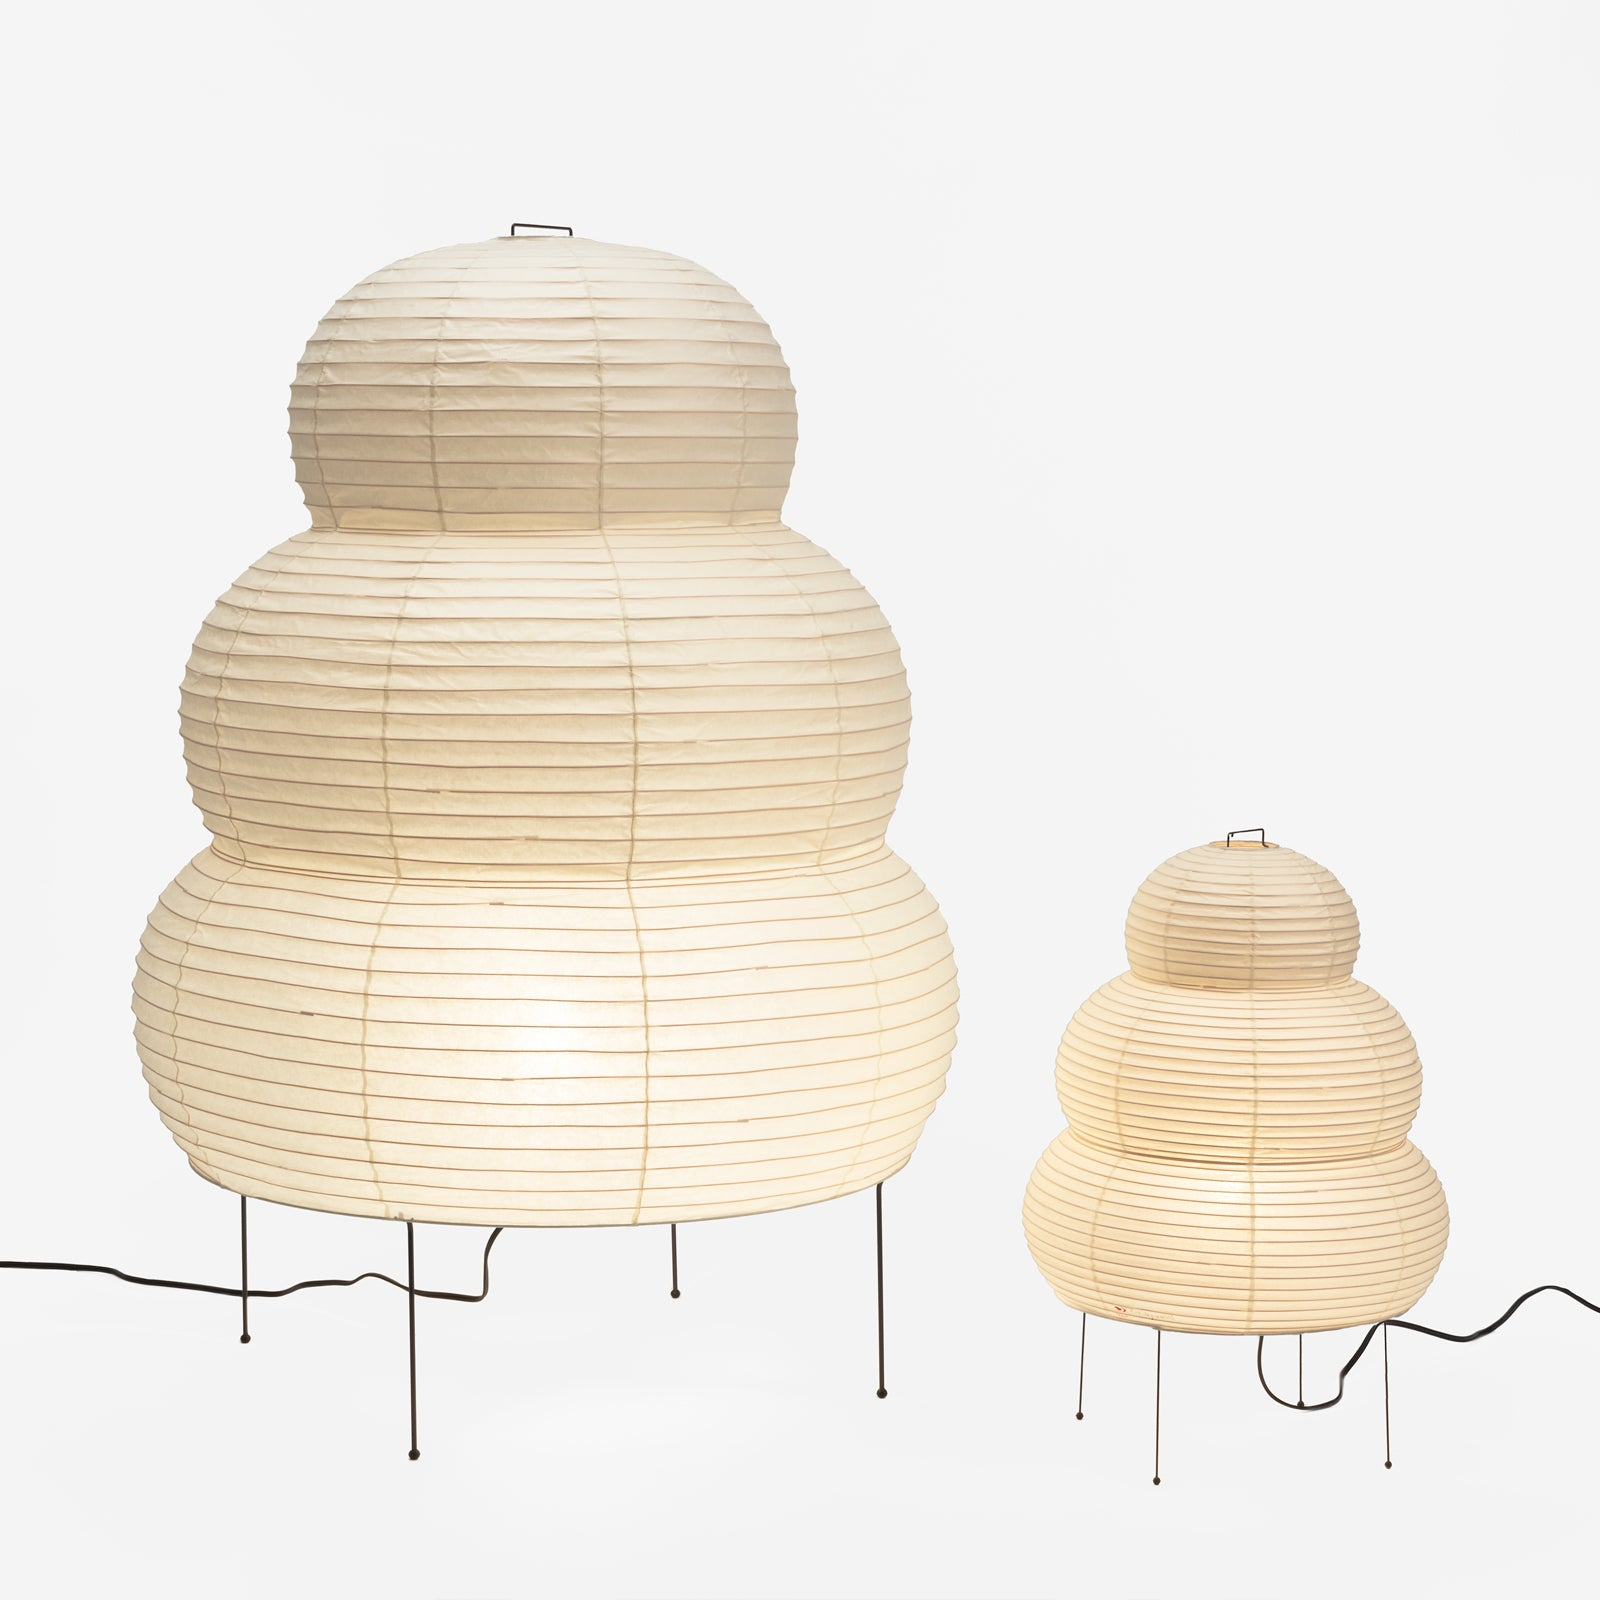 Akari 24N (small) and 25N (large) light sculptures